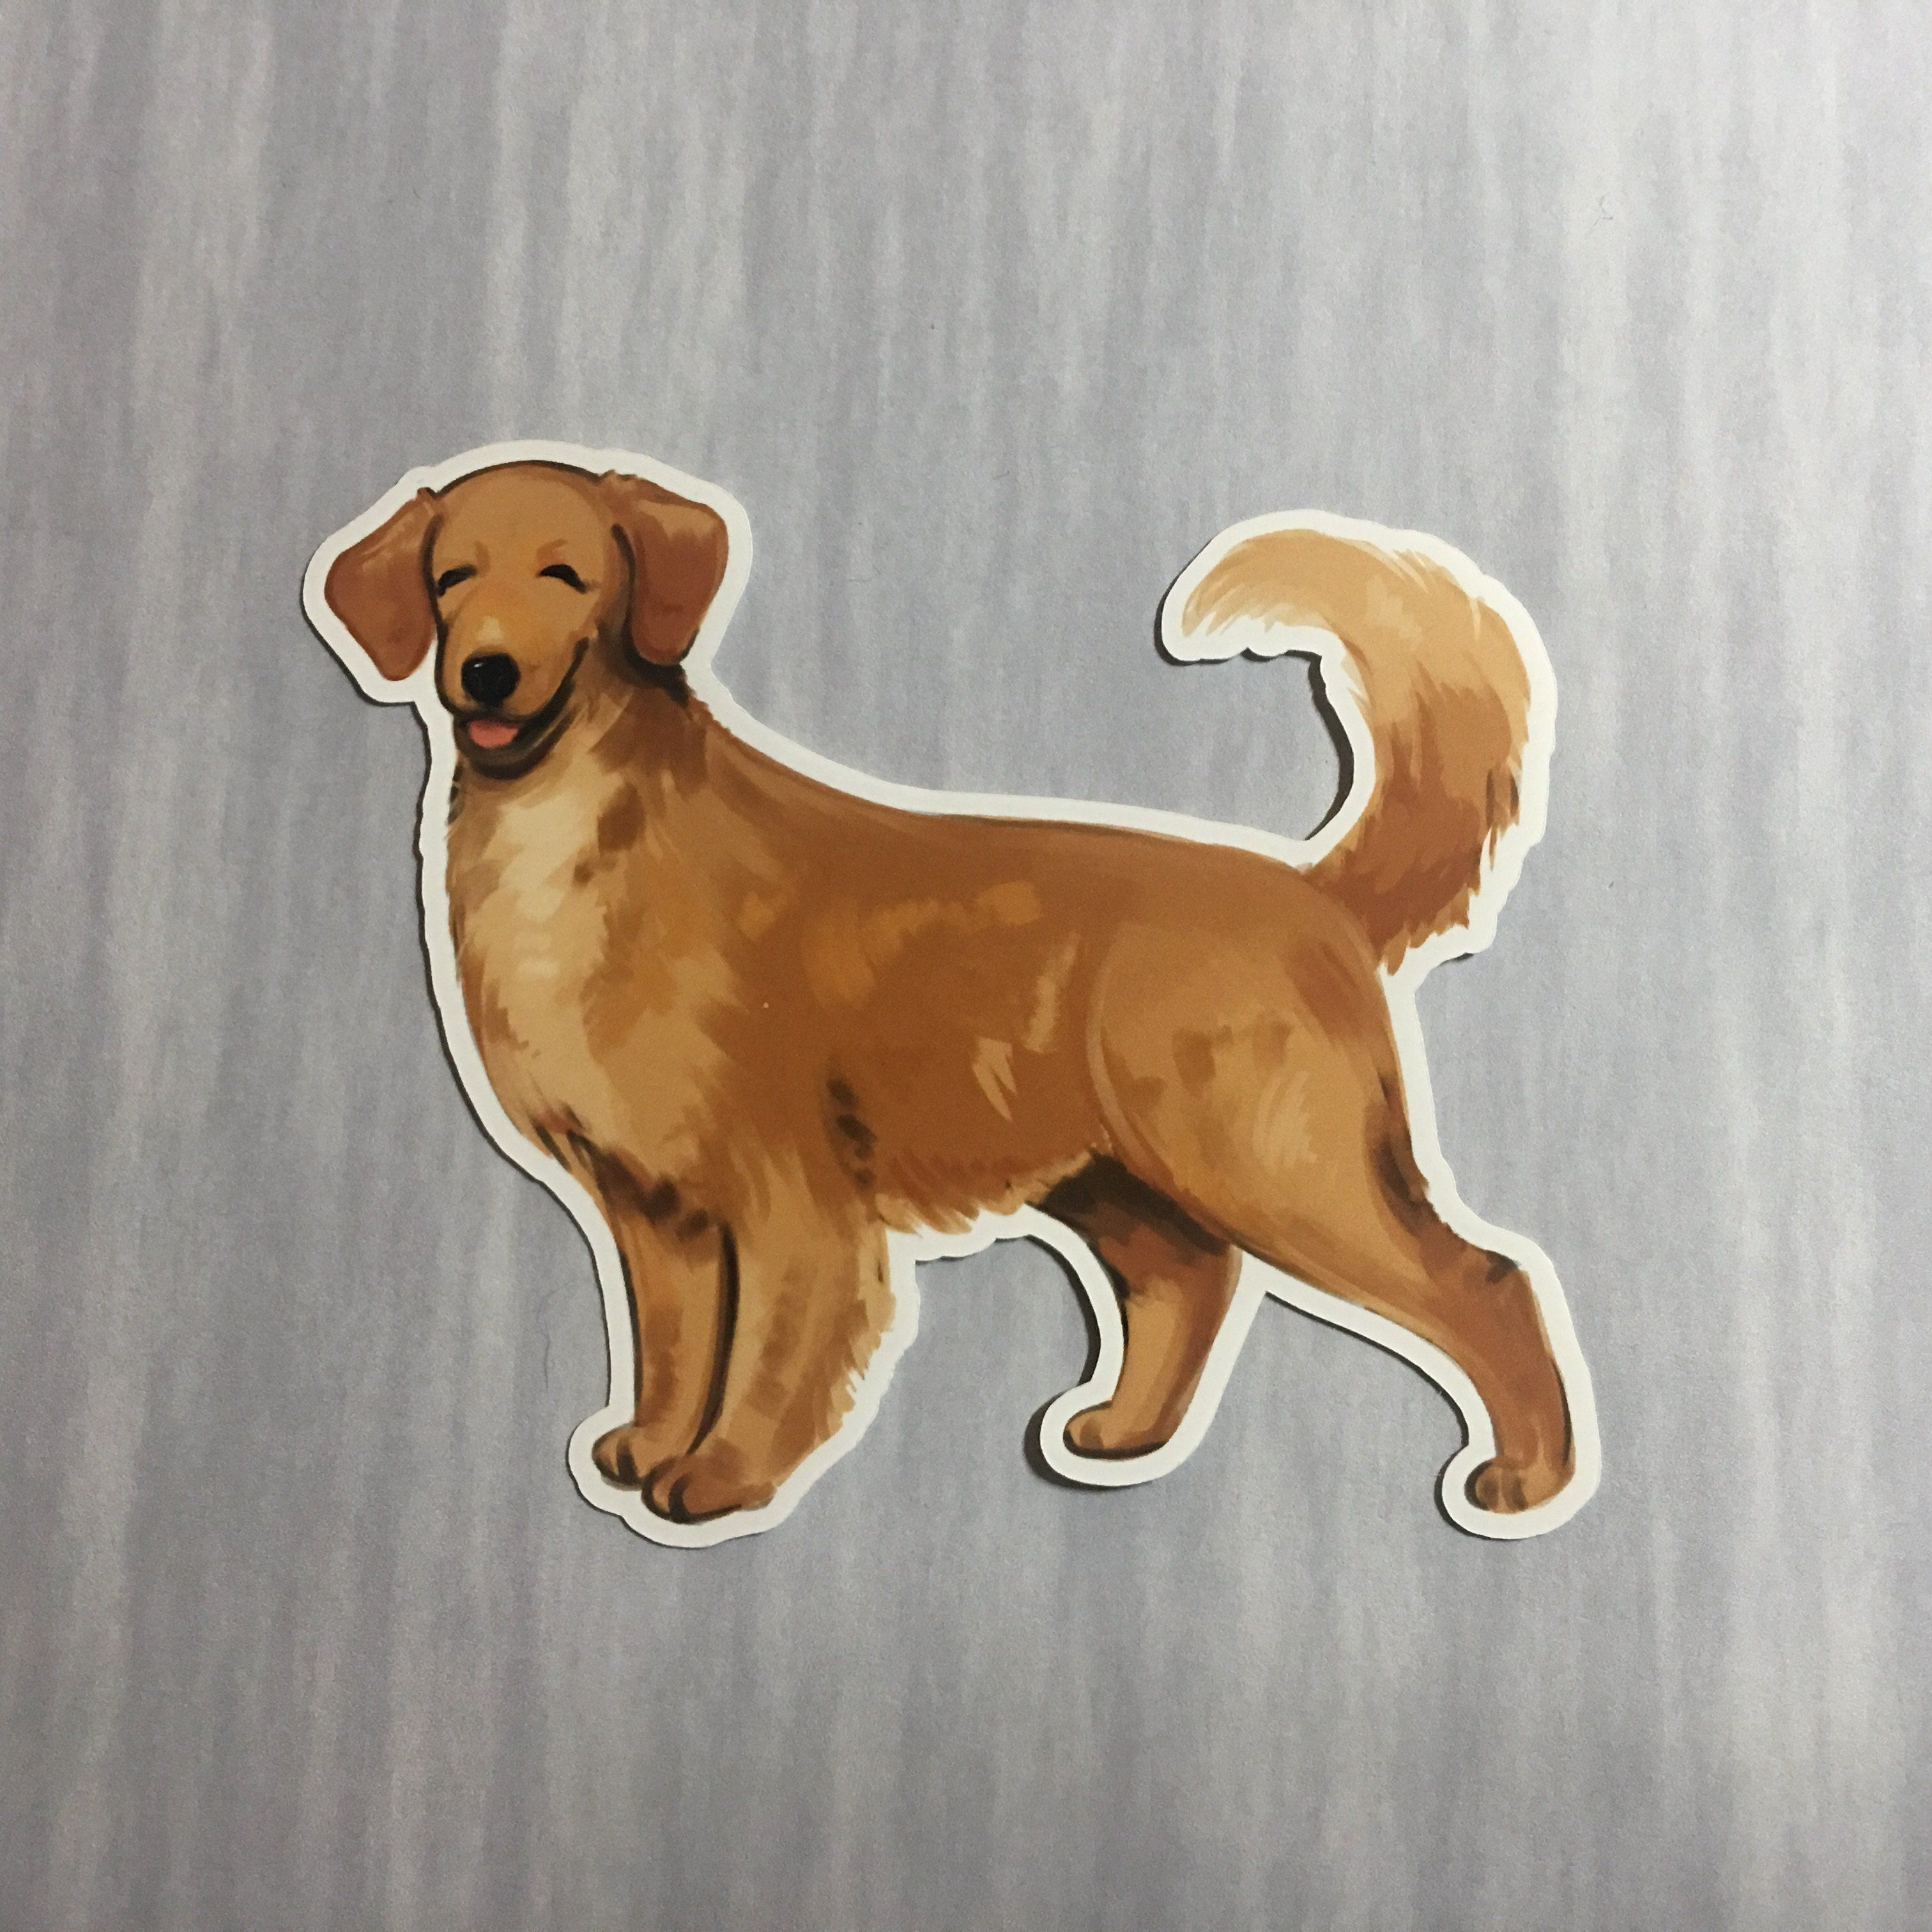 Golden Retriever Sticker Golden Retriever Dog Stickers Golden Dog